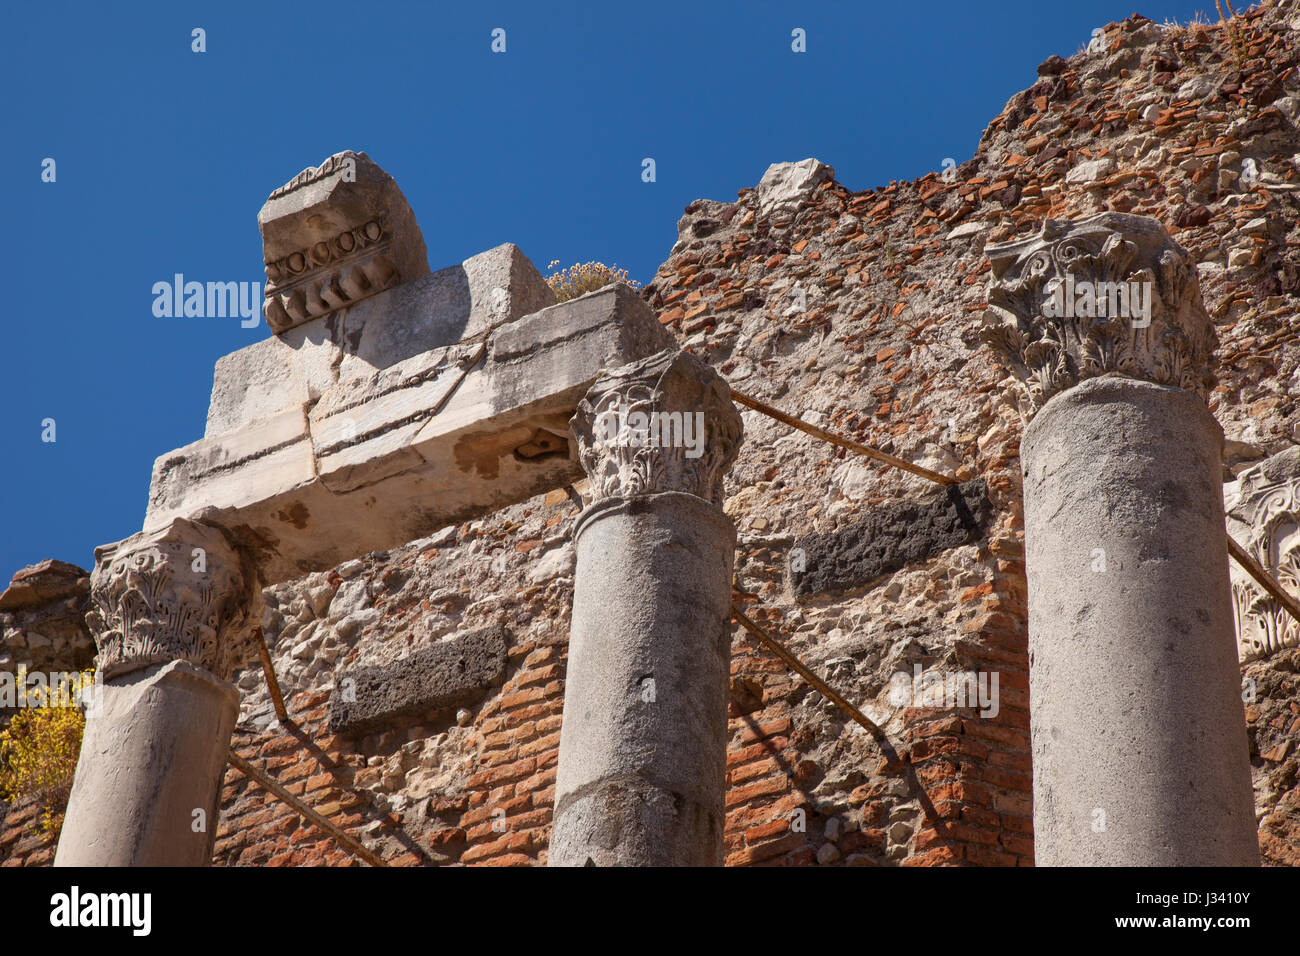 Ancient runis of Teatro Greco (Greek Theatre - 3rd c. BC), Taormina, Sicily, Italy - Stock Image